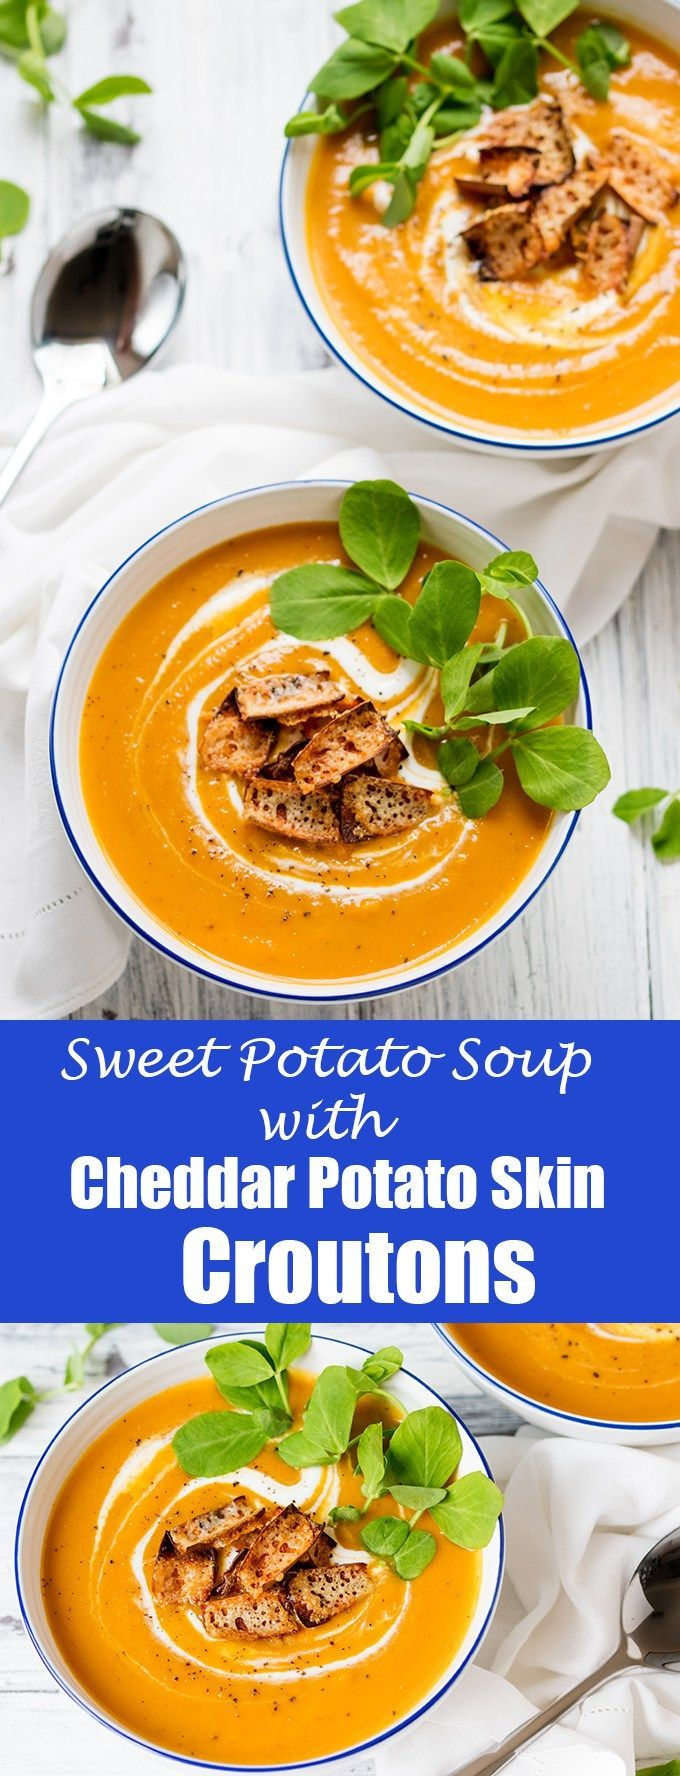 Baked sweet potato and carrot soup with cheddar potato skin croutons – A warming healthier soup. Gluten free & vegetarian.